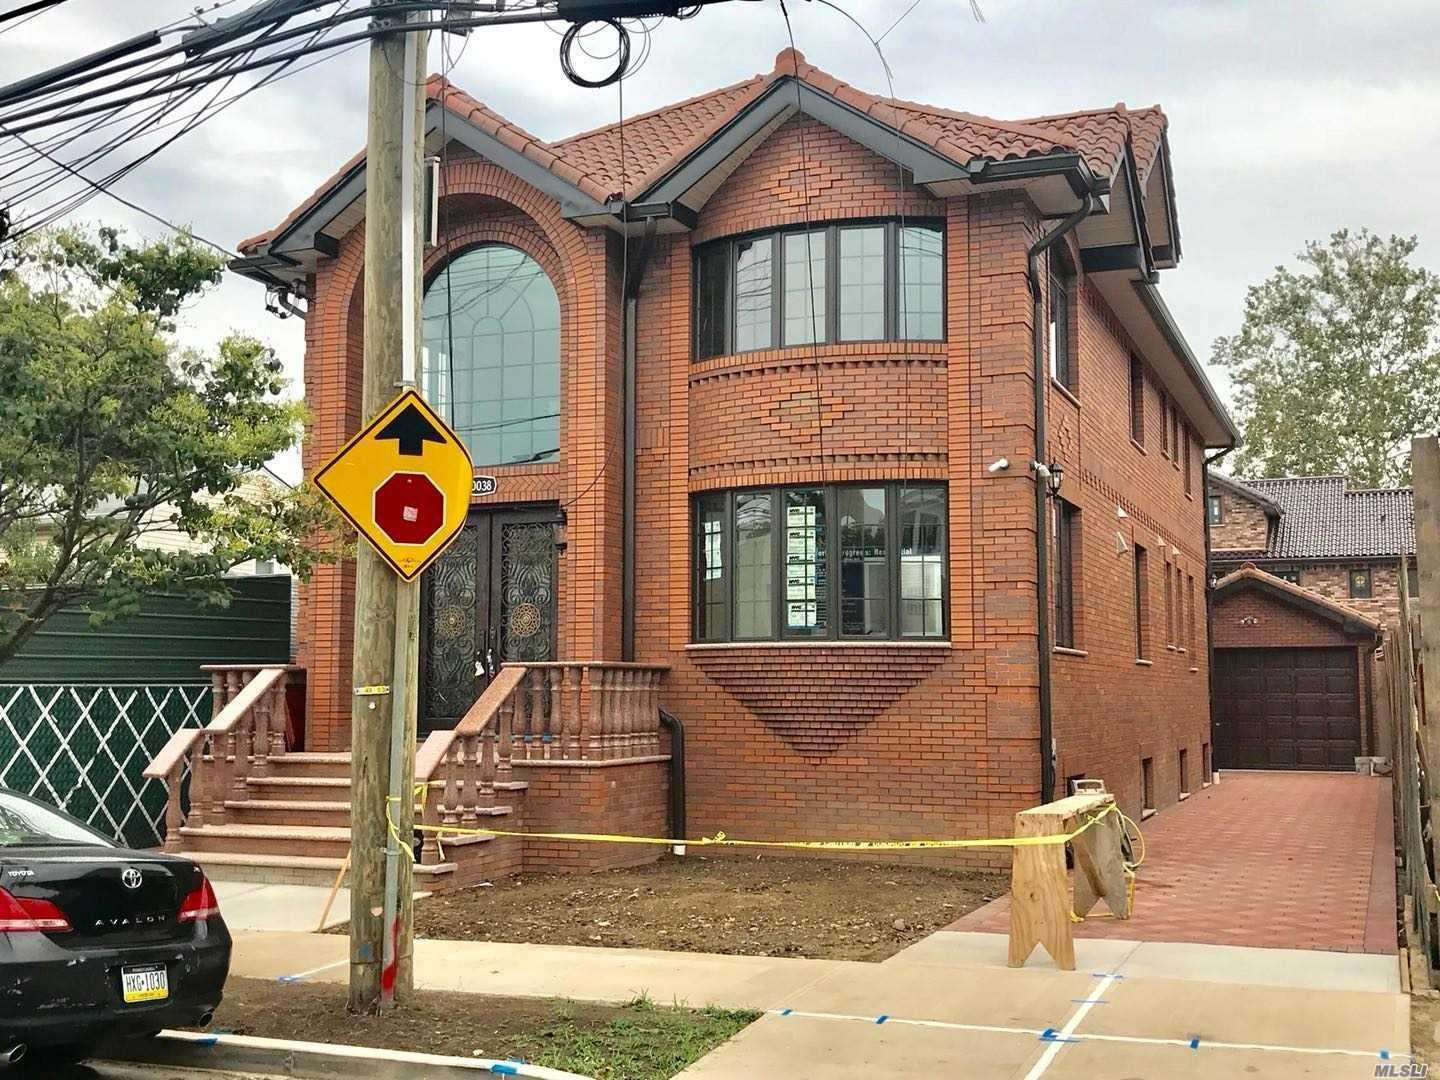 Location!!! 2 Blocks Away From Northern Blvd, 3 From H Mart, 4 From Lirr. 15 Mins Walk Away From Ps159 & 3 Min Drive From Clearview Expy. This Luxurious Contemporary Offers 1378 Sqft Designer Living Space W/ Exquisite Craftsmanship, Incredible Architectural Detail And Extensive Millworks. Large Brick 2 Family. Fine Workmanship & High Quality Materials, Granite Marble Kitchen Using Samsung Appliances, Sd #26, Cac, Hardwood Floors, High Income Potential. Must See.